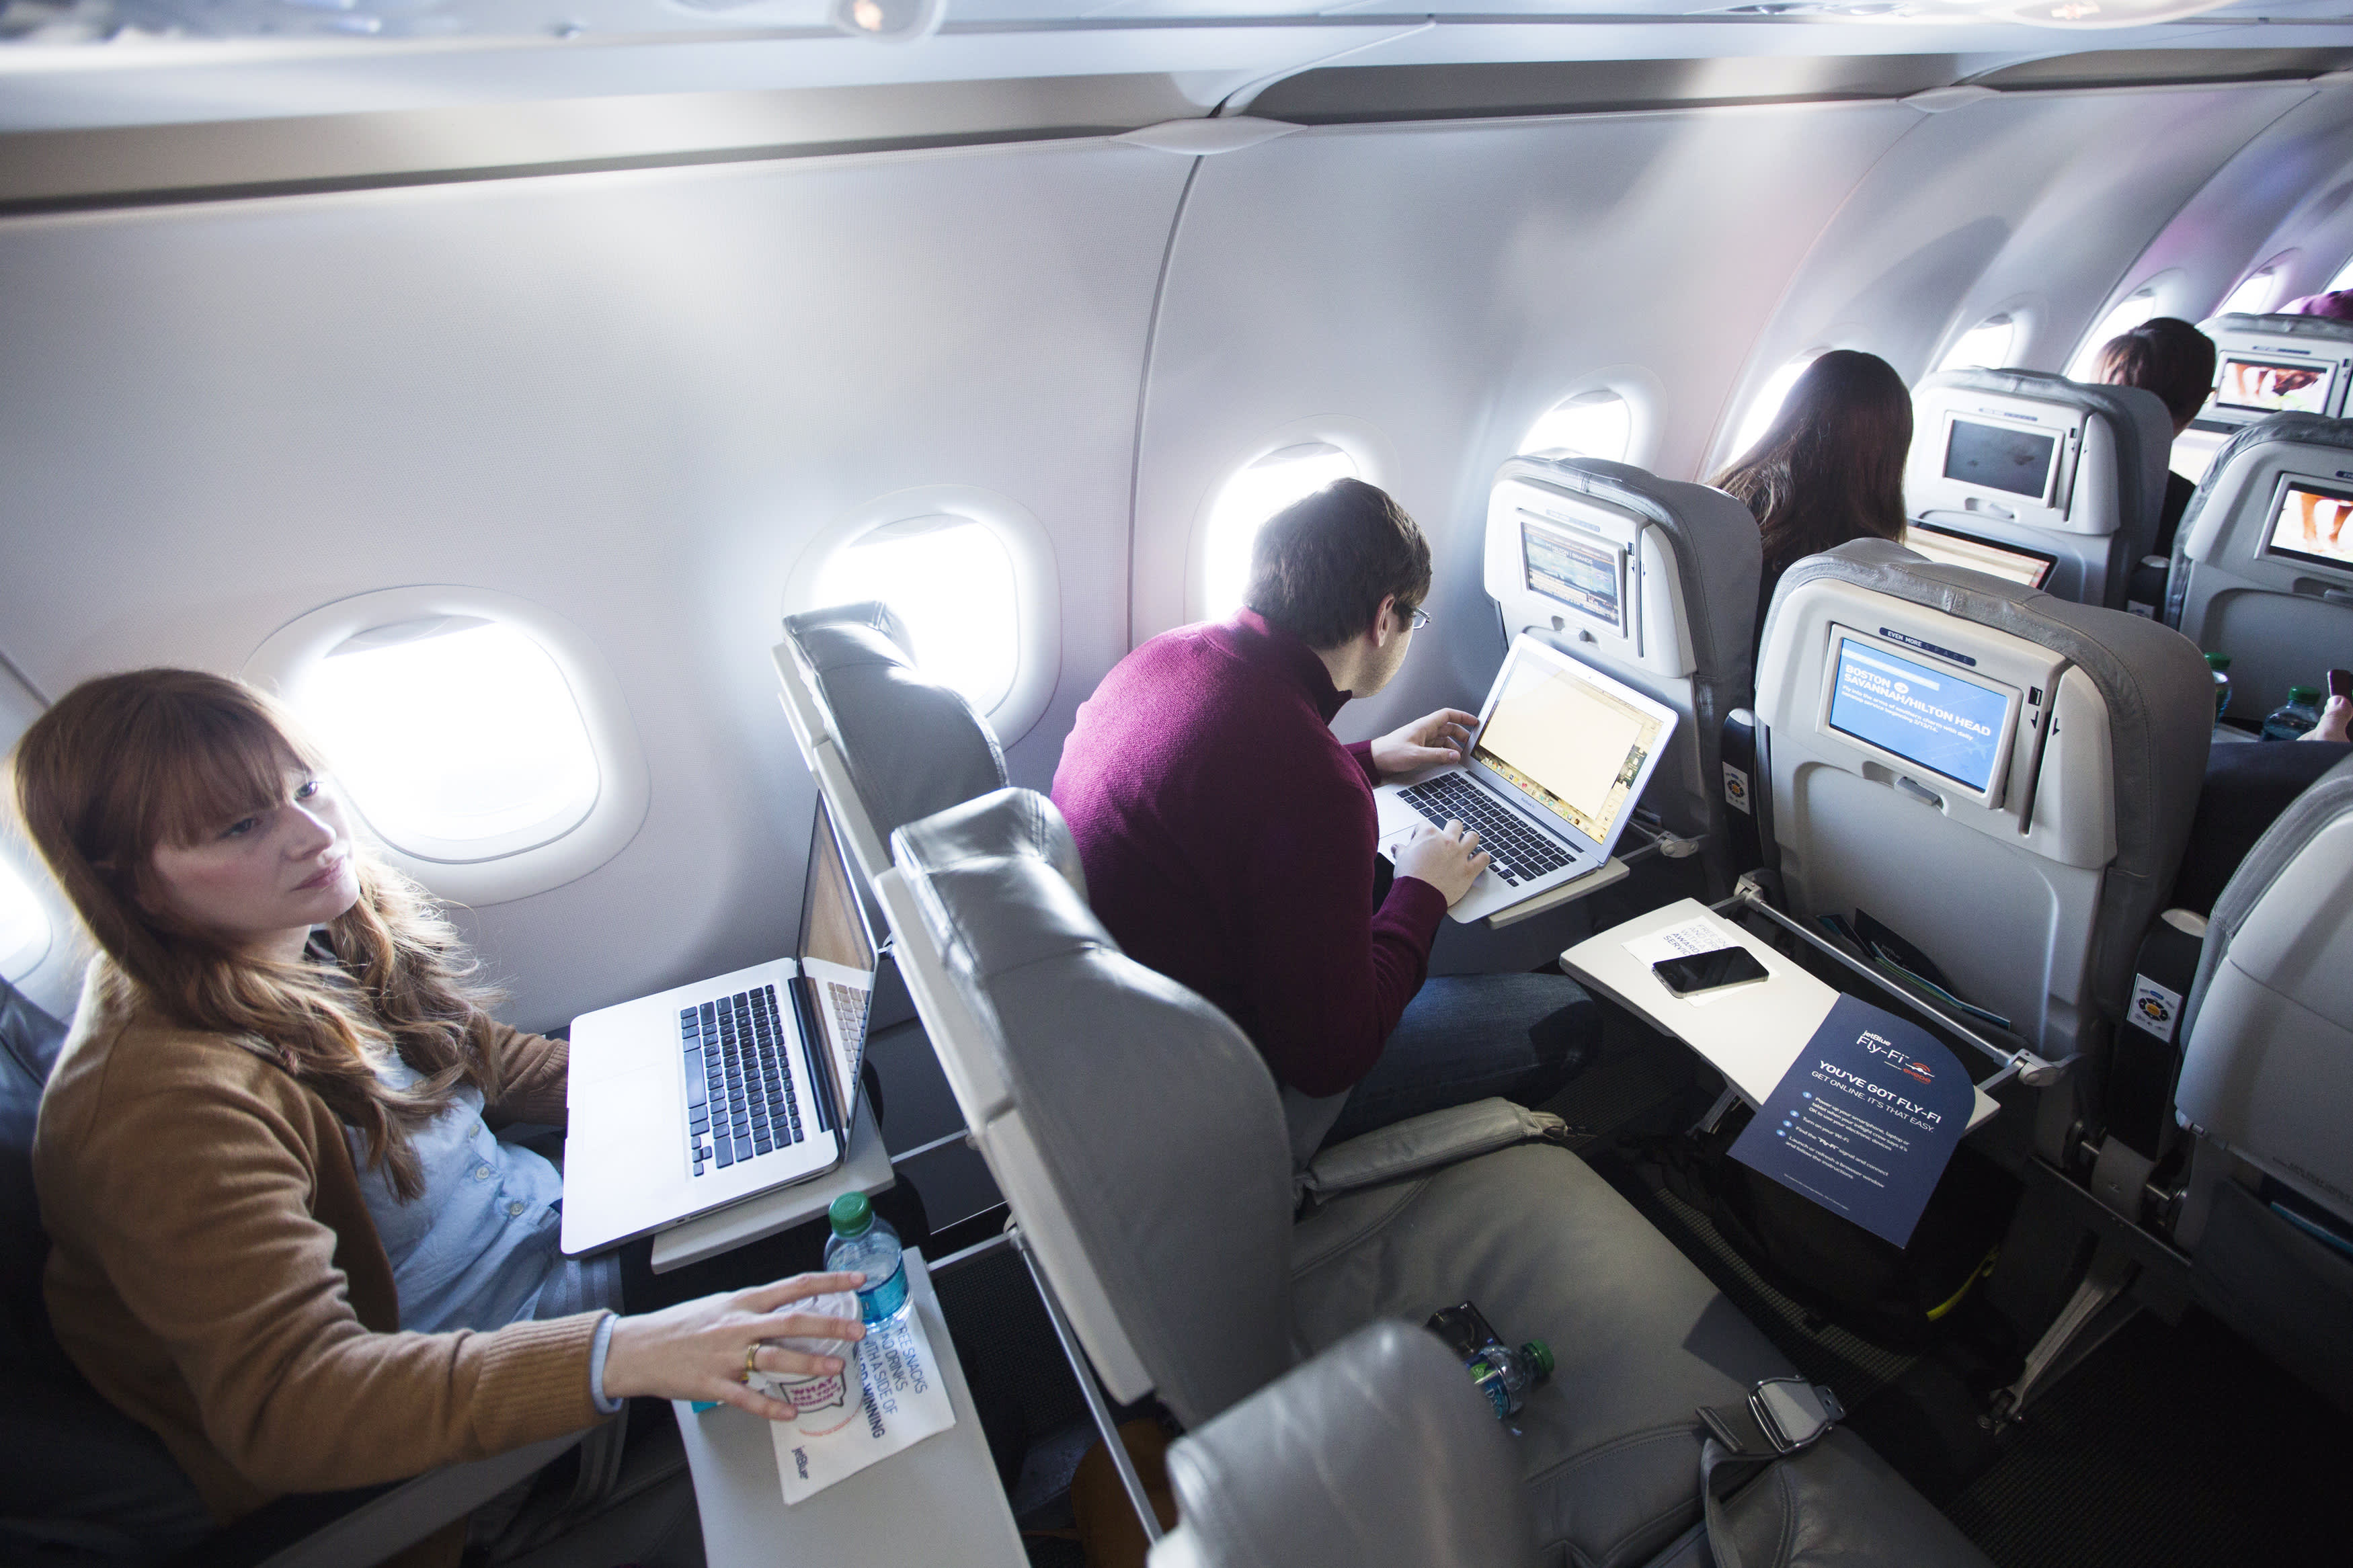 Journalists use their computers to test high speed inflight Internet service on a flight out of John F. Kennedy International Airport in New York.